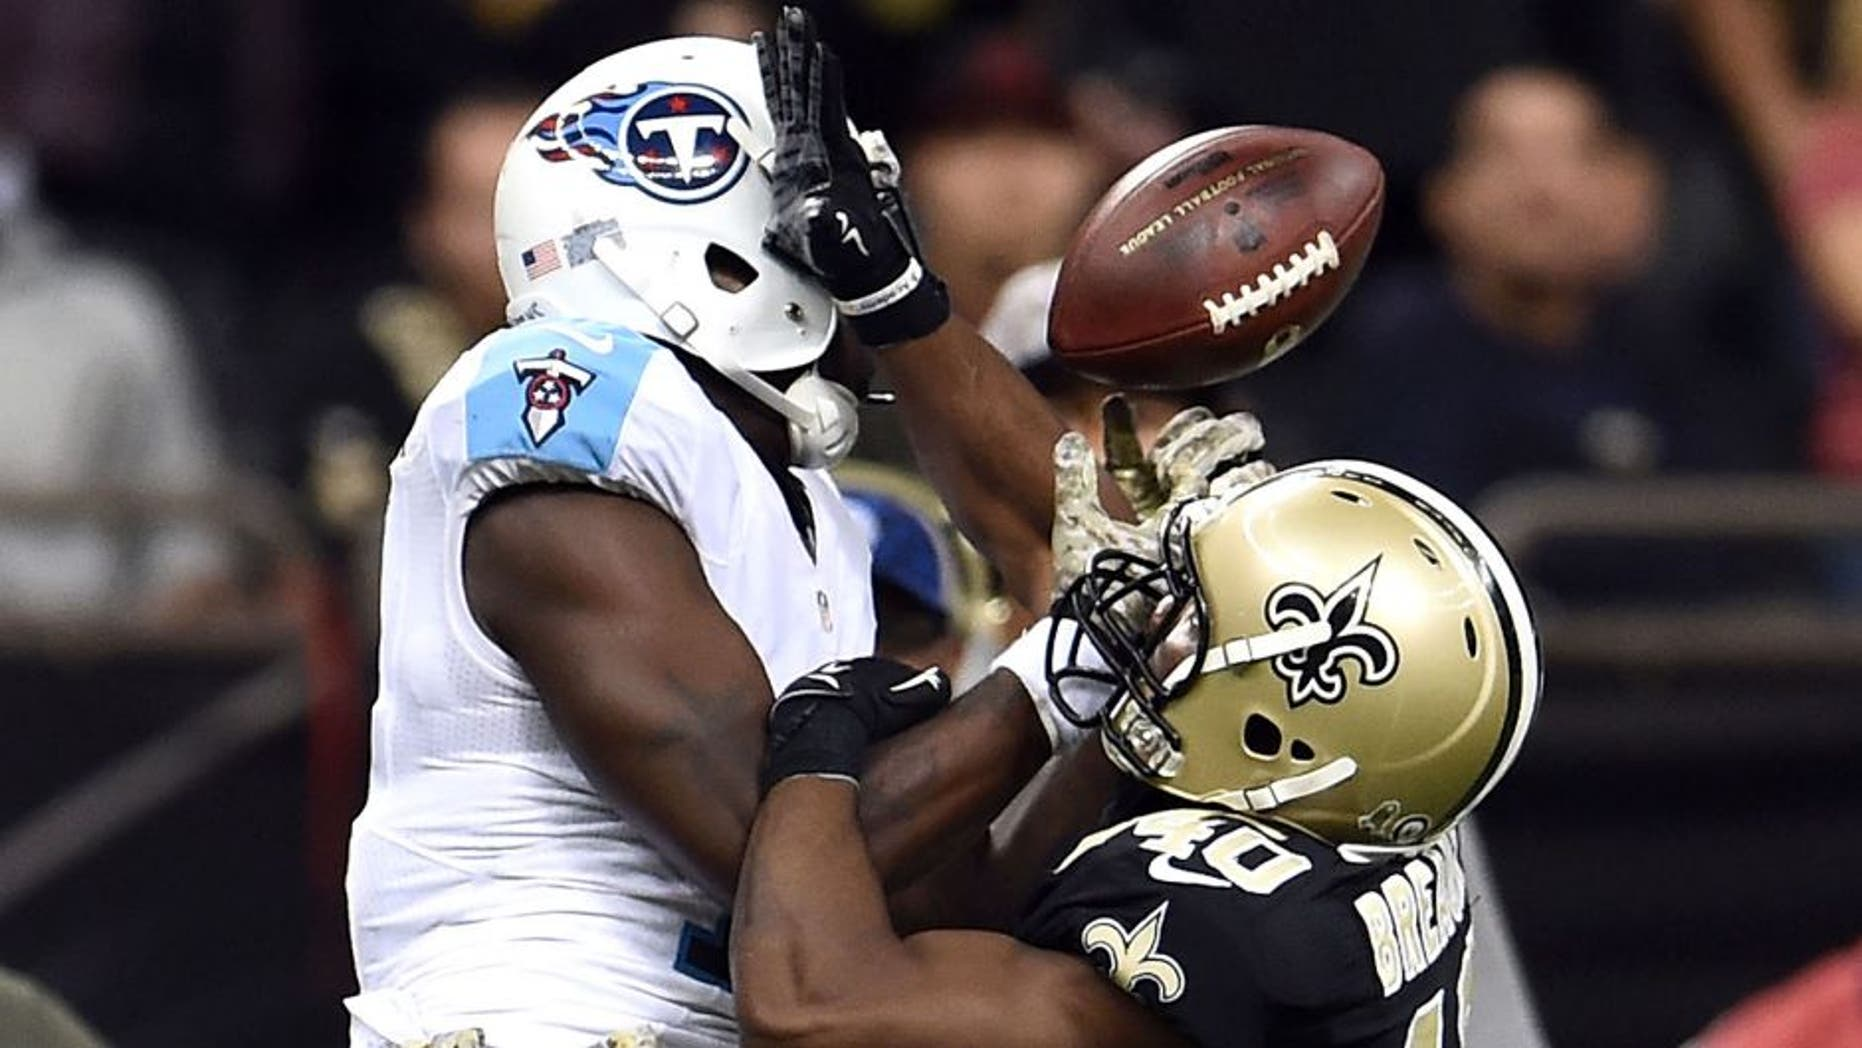 NEW ORLEANS, LA - NOVEMBER 08: Delvin Breaux #40 of the New Orleans Saints defends a pass intended for Dorial Green-Beckham #17 of the Tennessee Titans during a game at the Mercedes-Benz Superdome on November 8, 2015 in New Orleans, Louisiana. The Titans won the game in overtime 34-28. (Photo by Stacy Revere/Getty Images)